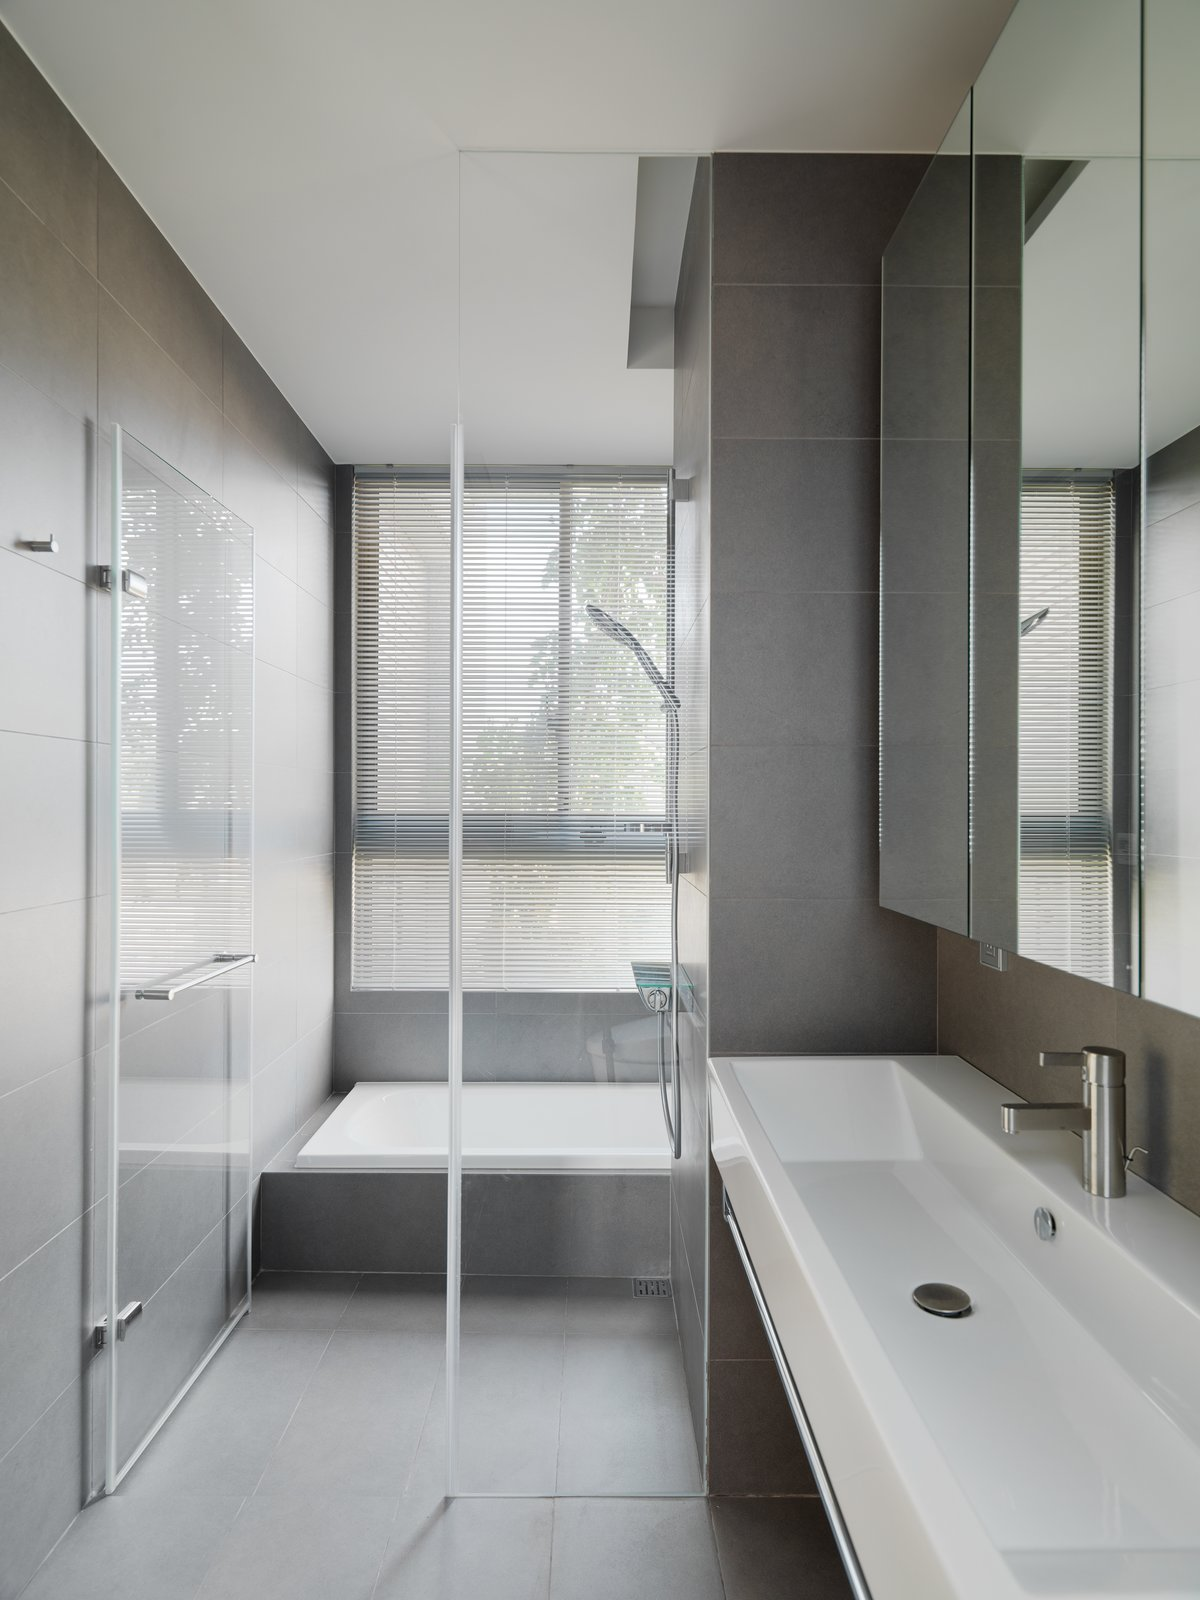 Selection of materials are kept to the minimum, so light become prominent.  The Element Apartment by Marty Chou Architecture